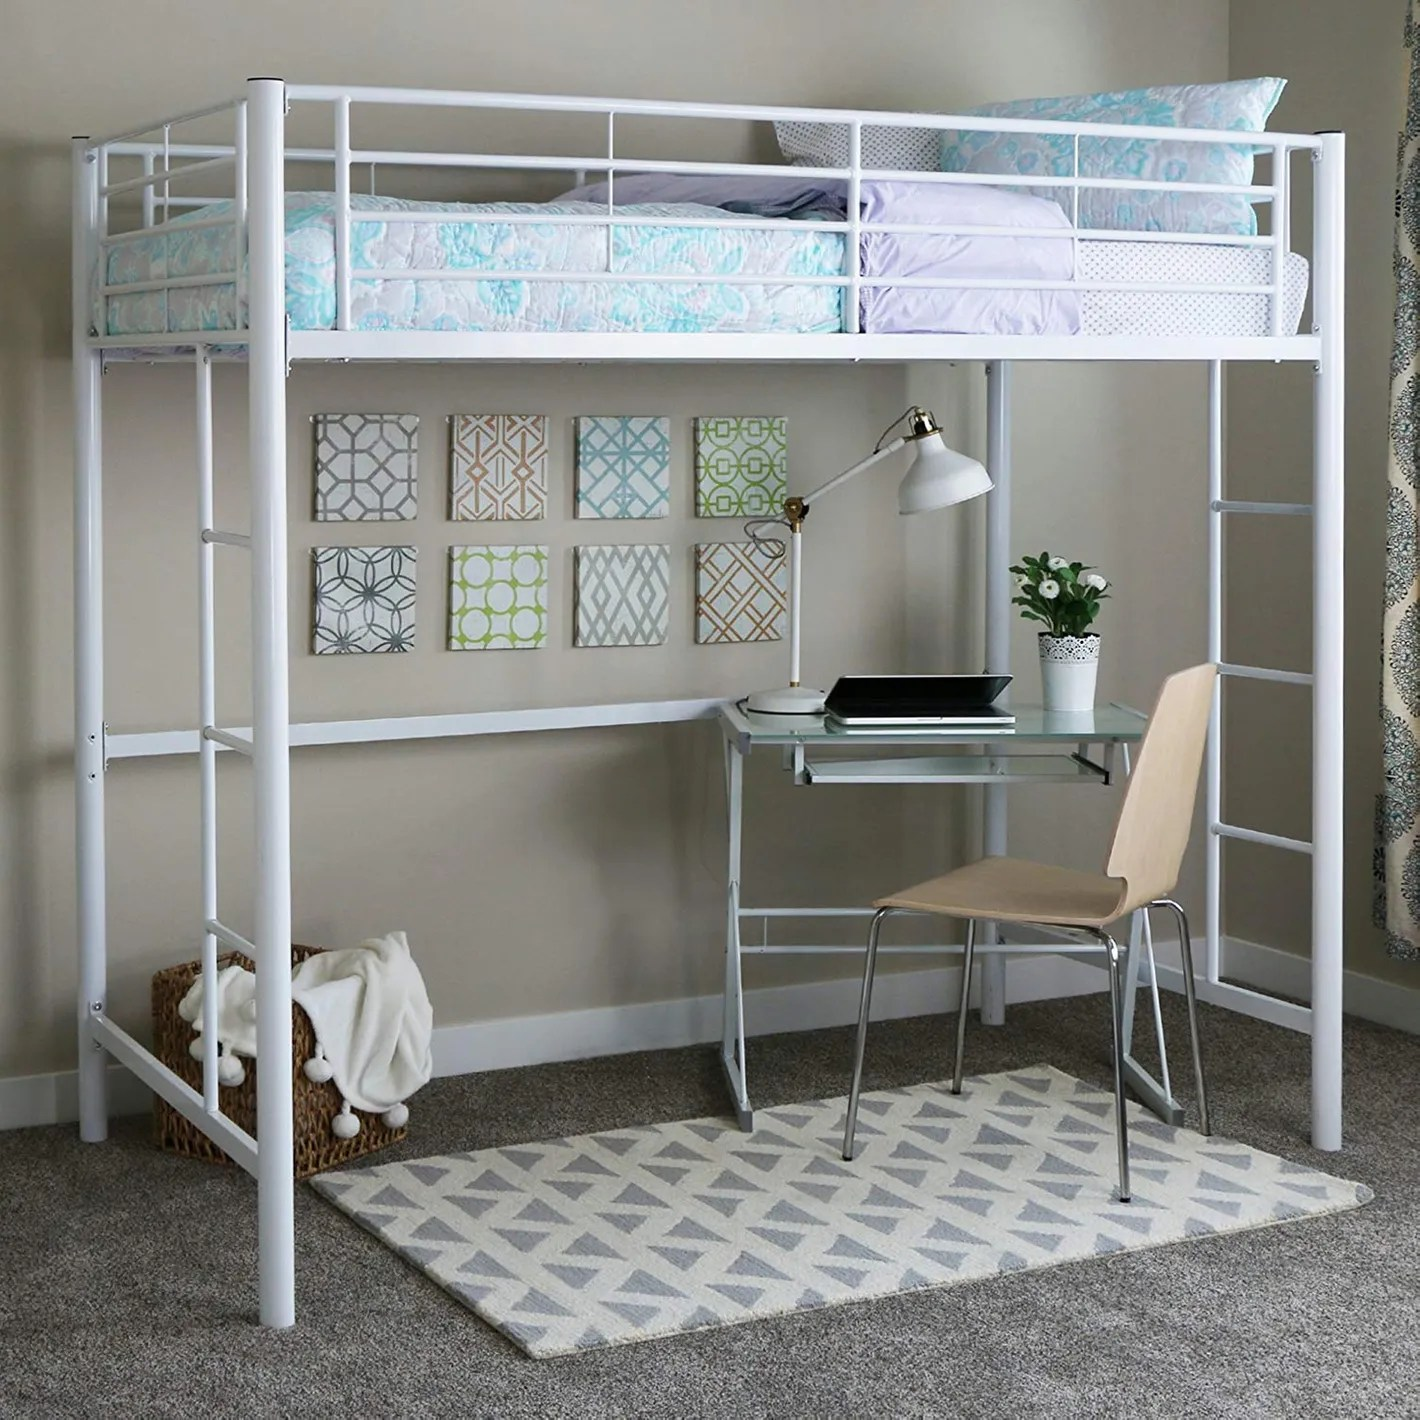 Land Of Beds Reviews Walker Edison Twin Metal Loft Bed